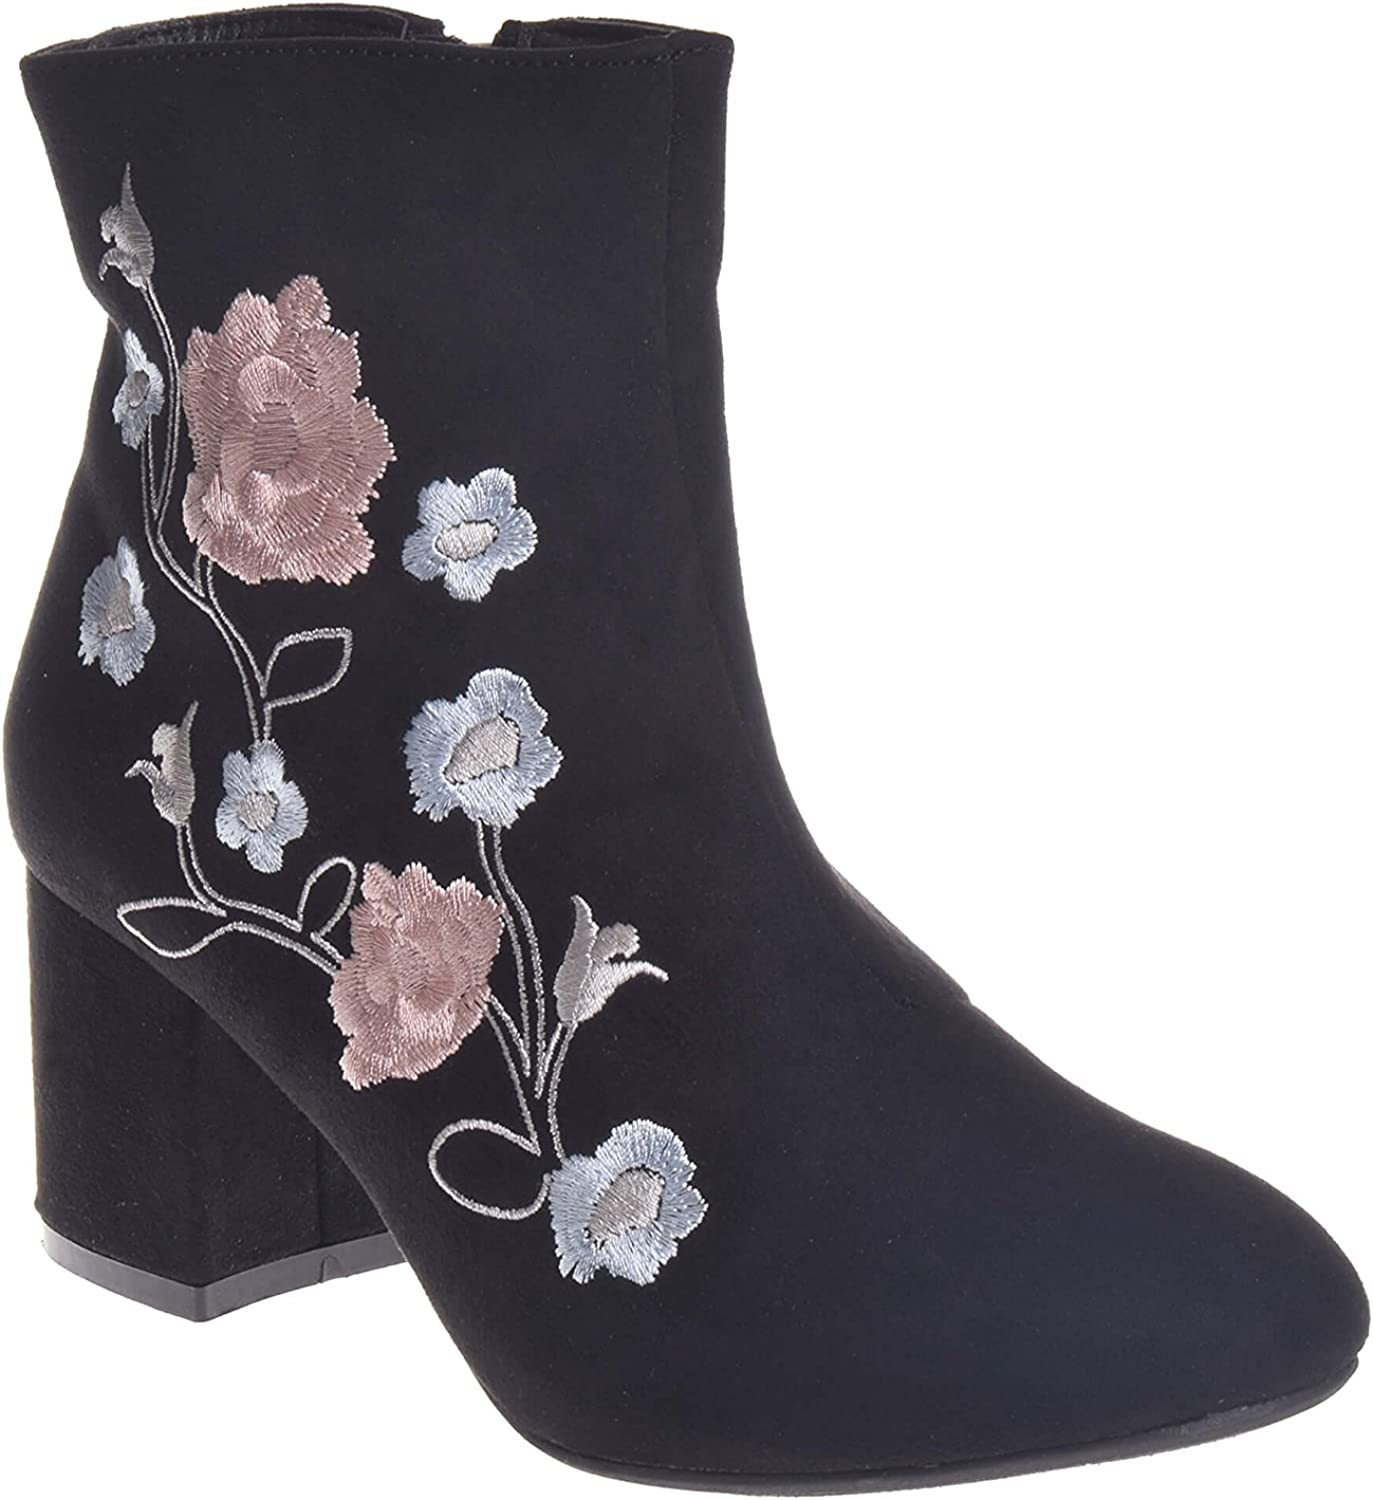 Wanted Deal Block Heel Bootie with Floral Embroidery, Black, Size 8.0